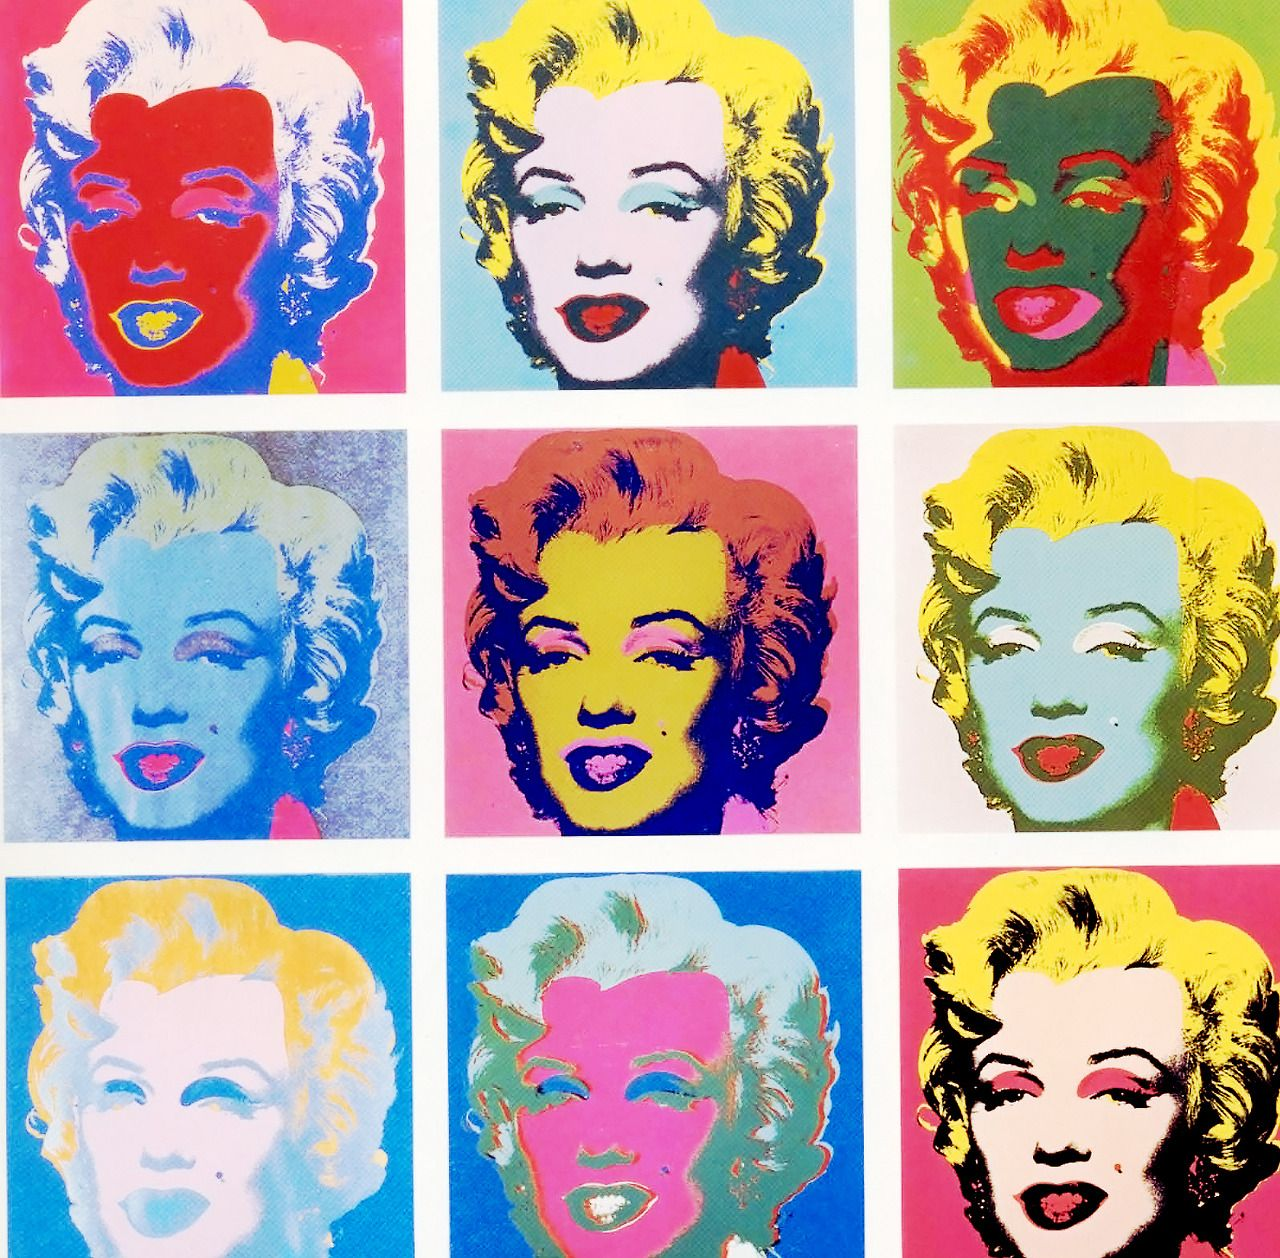 Marilyn Pop Art Andy Warhol Marilyn Monroe By Andy Warhol I Actually Have One Of